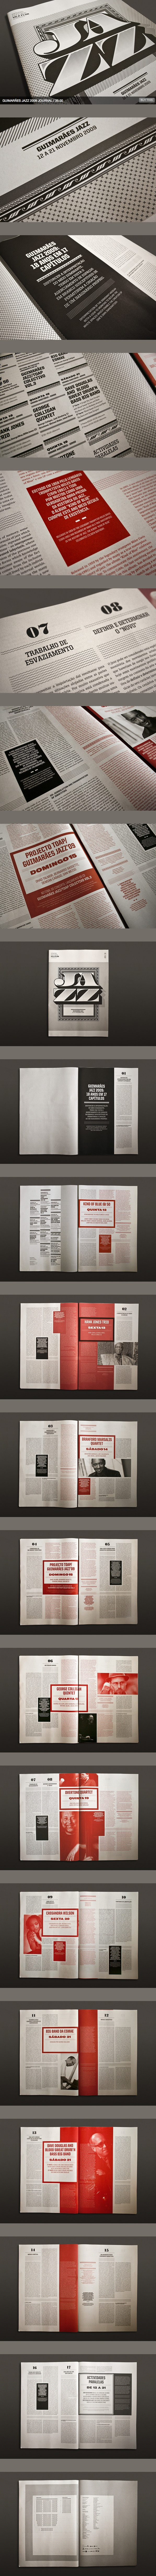 The Jazz 09 Journal by Atelier Martinoña , via Behance